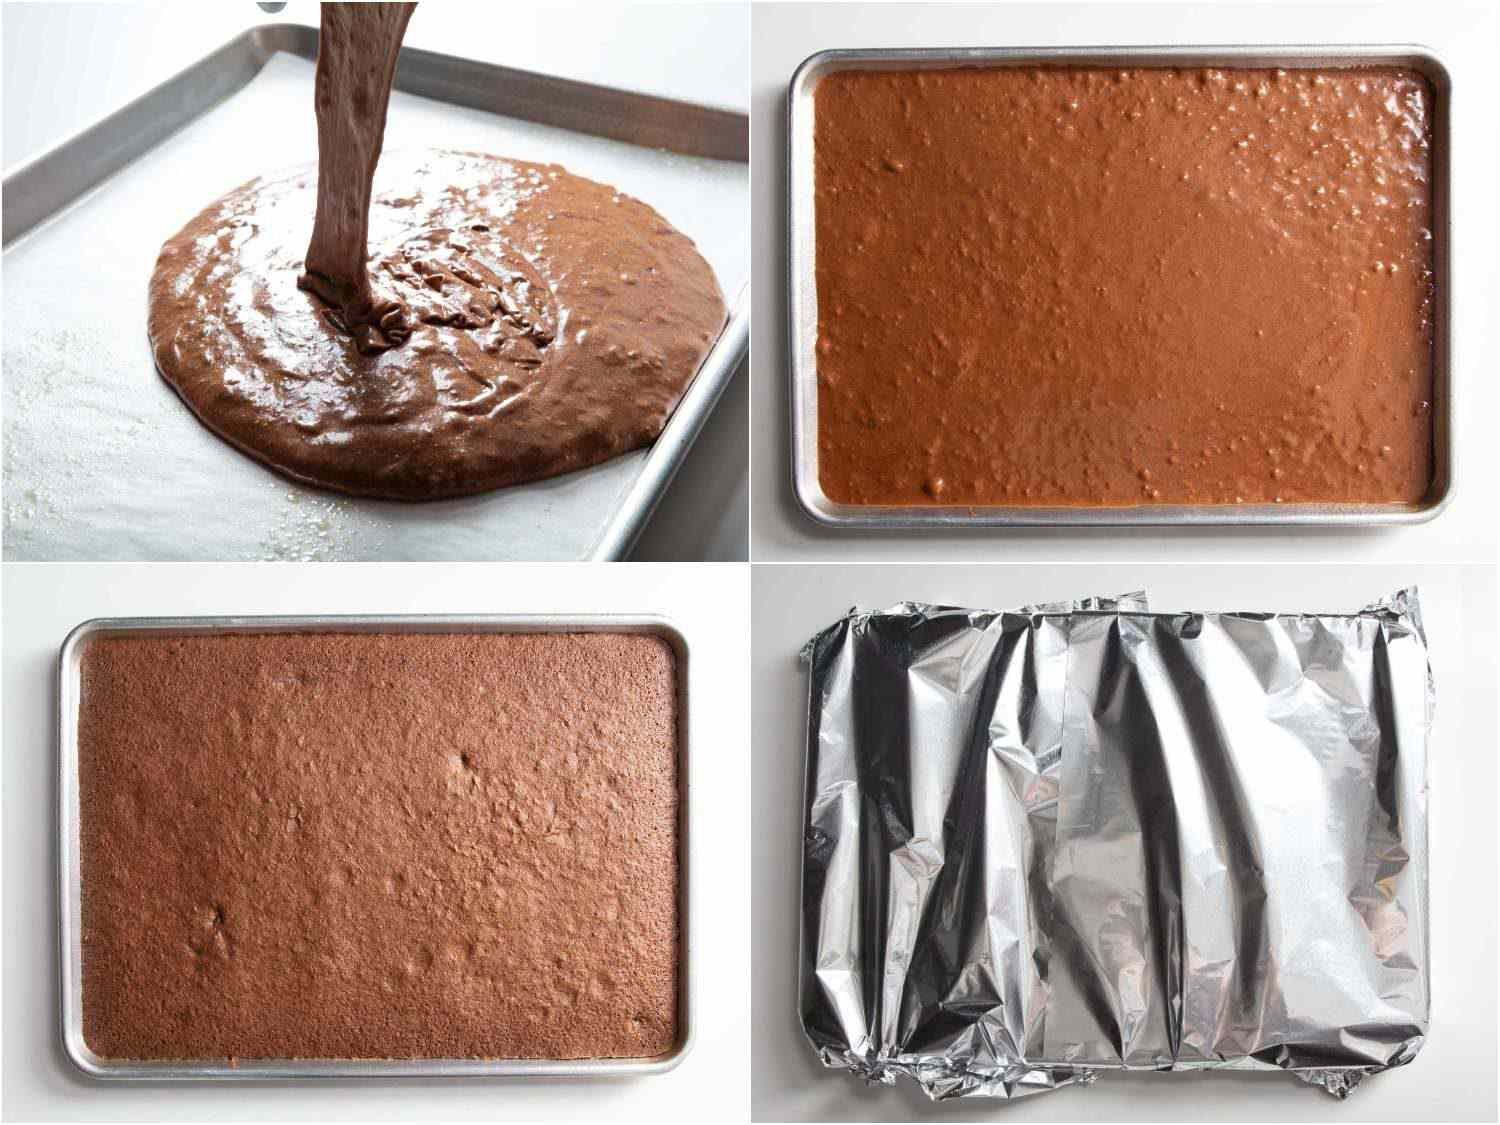 from batter to baking and steaming the chocolate cake